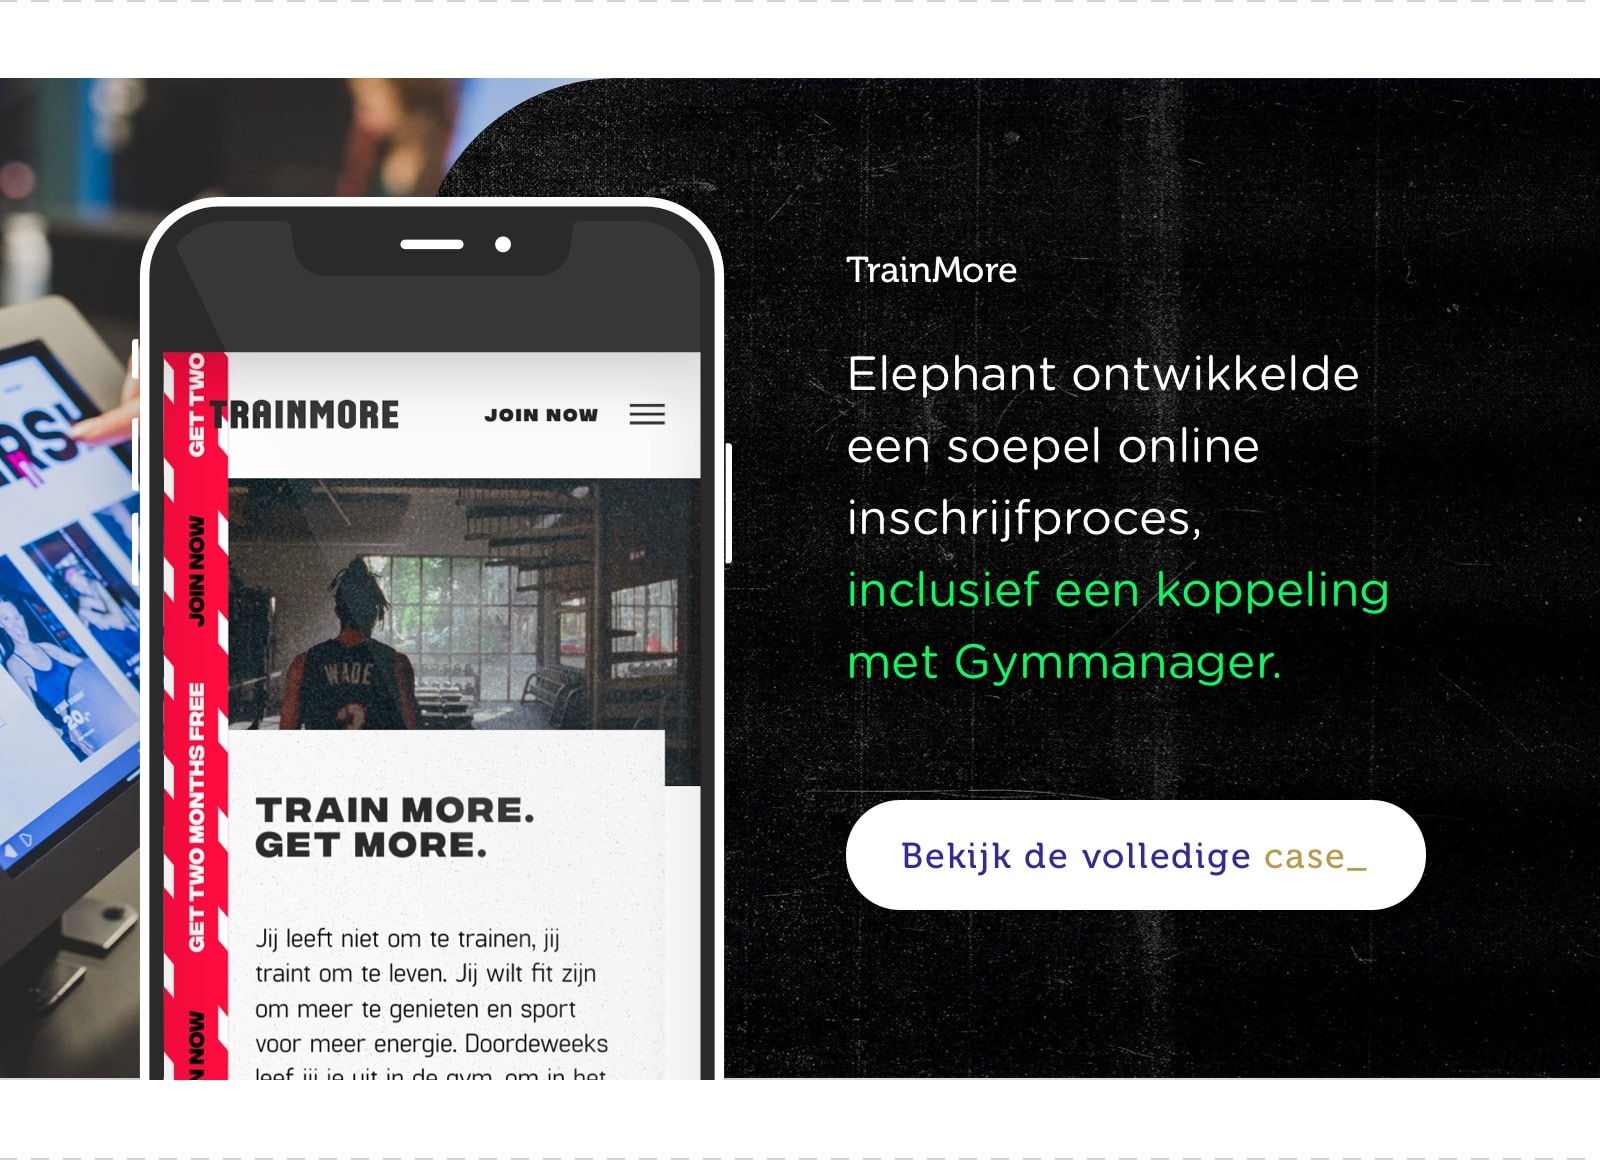 Elephant case voor TrainMore